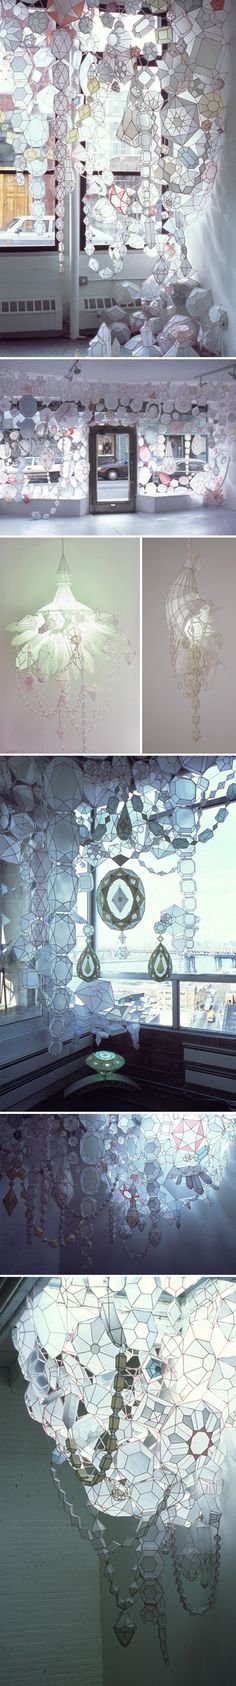 I like this because we are learning how to manipulate and work with paper, and that is what this installation is made out of. This shows what beautiful things we can make out of paper. Paper is not a limiting material, but you can transform it into something gorgeous.